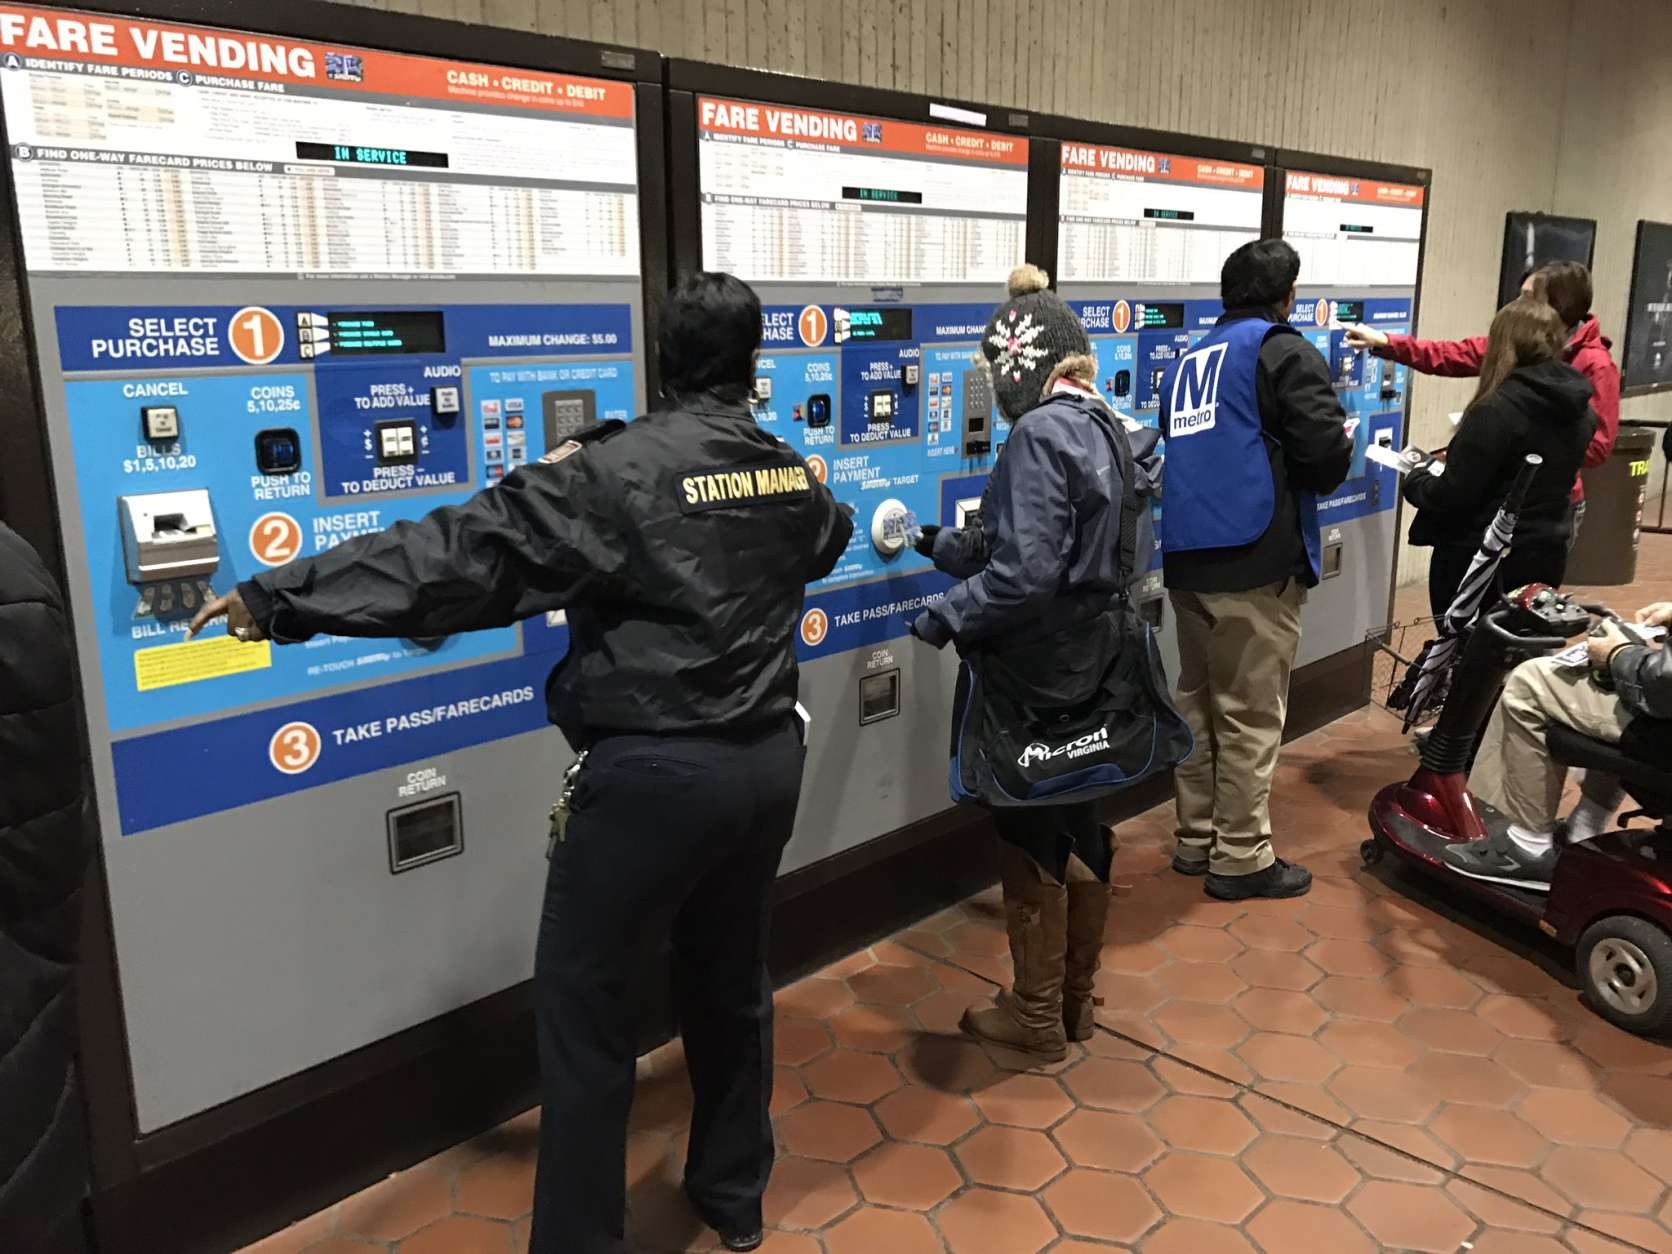 A Metro station manager helps customers navigate the fare machines early Friday morning for people looking to get around the District via Metro on Inauguration Day. An All Day Pass costs $14.50. (WTOP/Neal Augenstein)